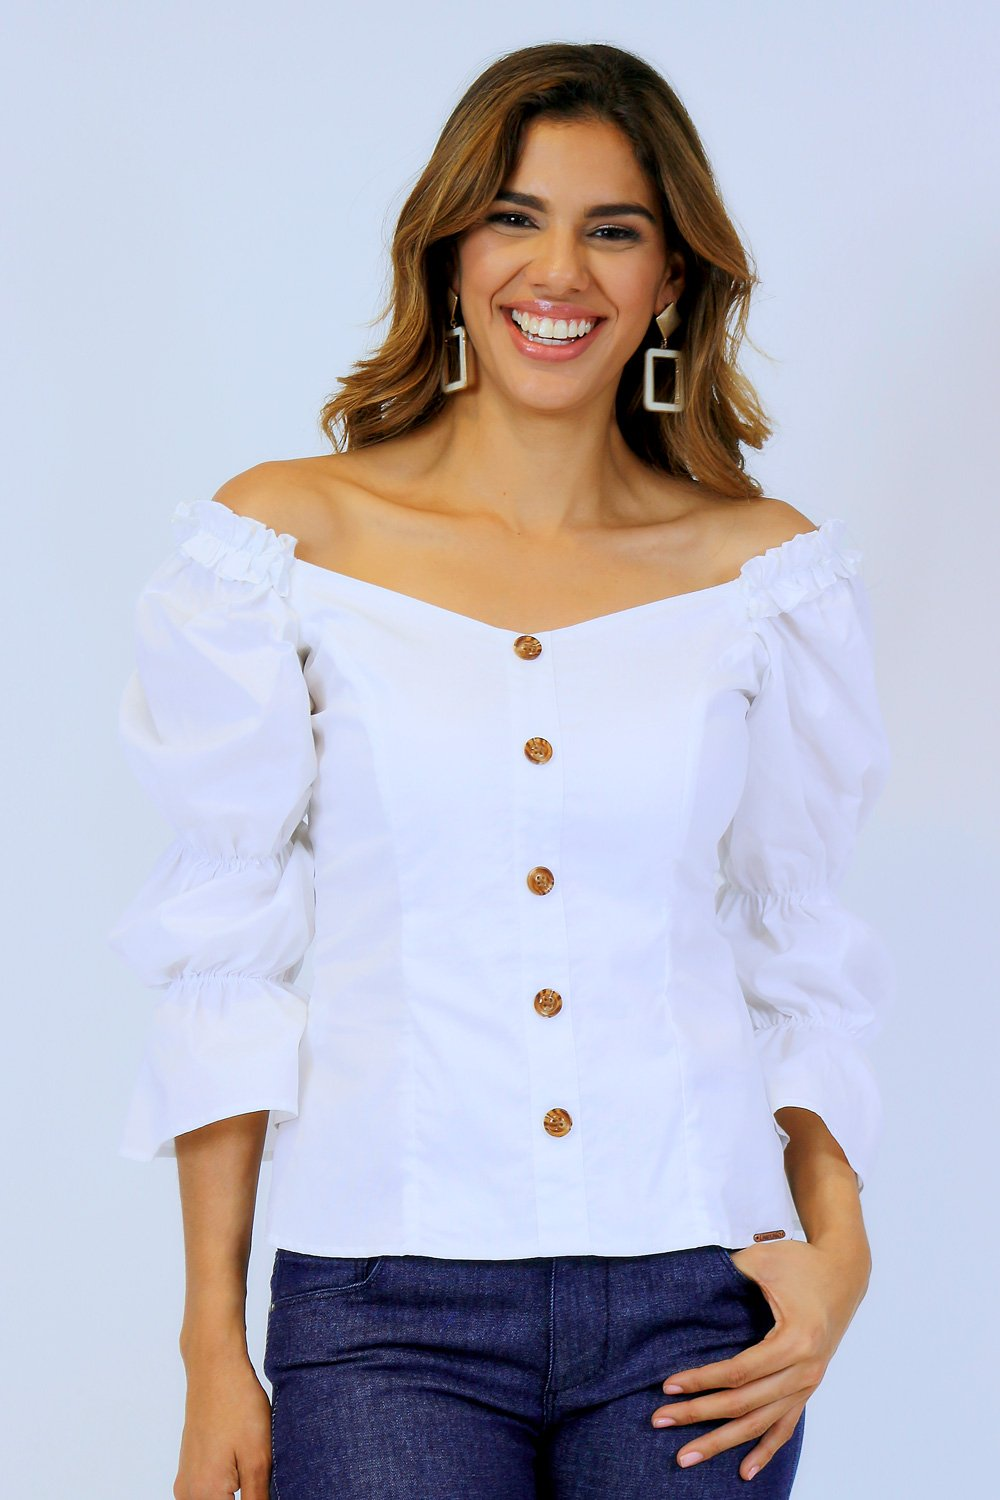 Blusa of shoulders espalda resortada blanco talla 8